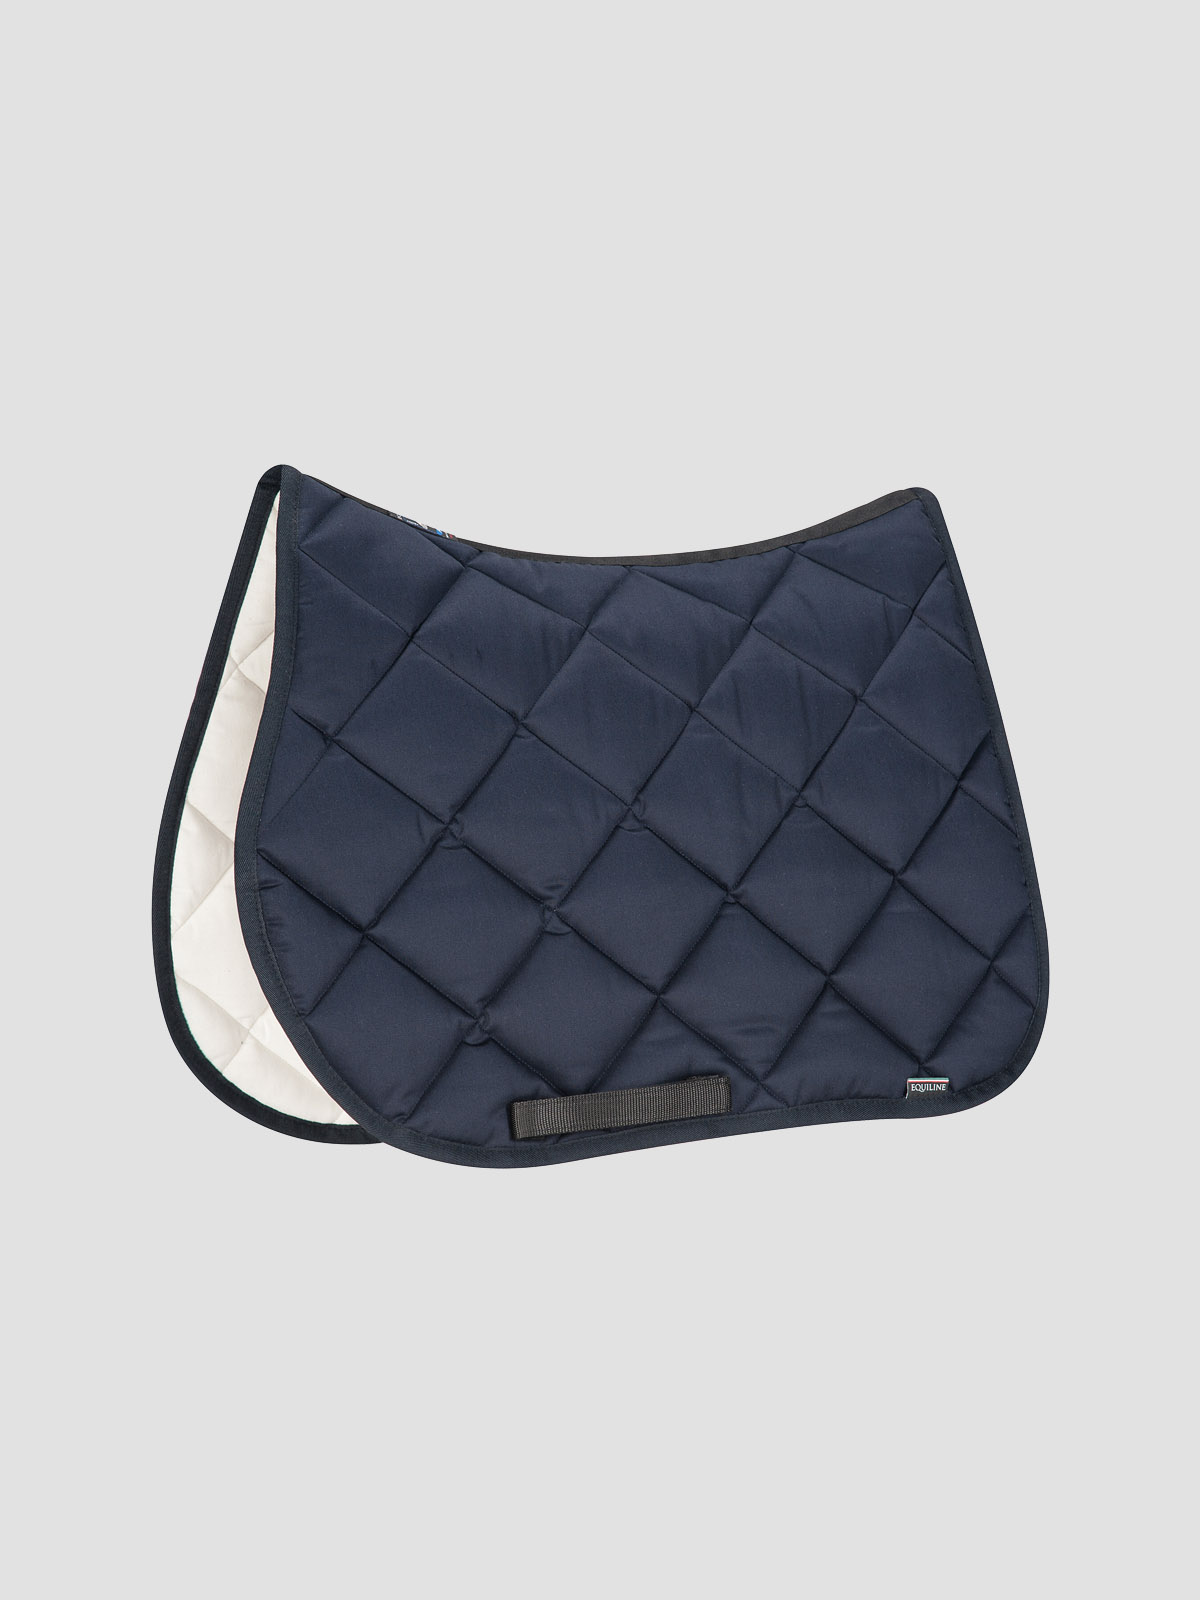 ROMBO - Rombo Saddle Pad 5